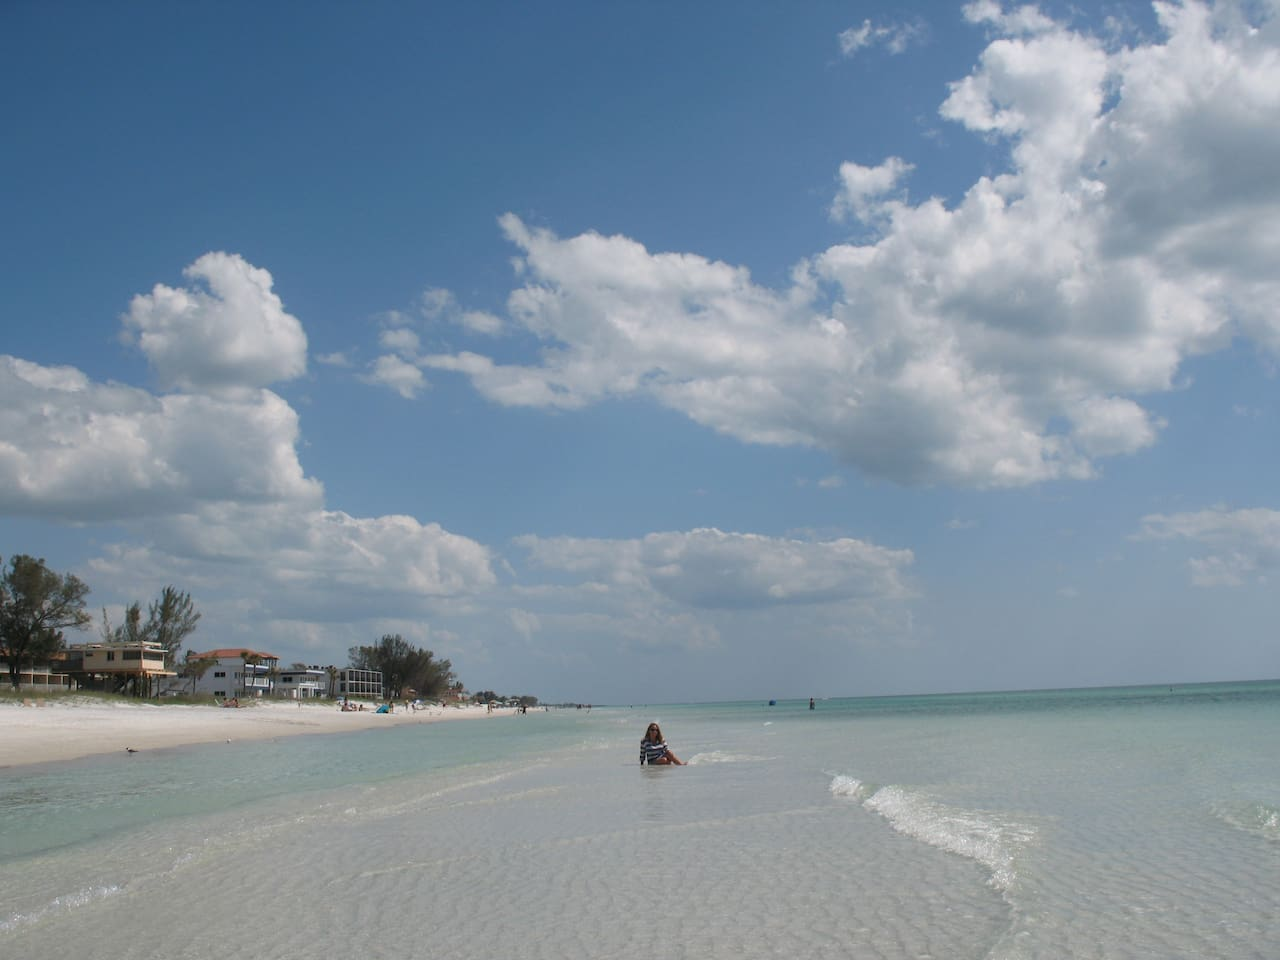 It's all about getting closest to the nicest beach on the Gulf coast!